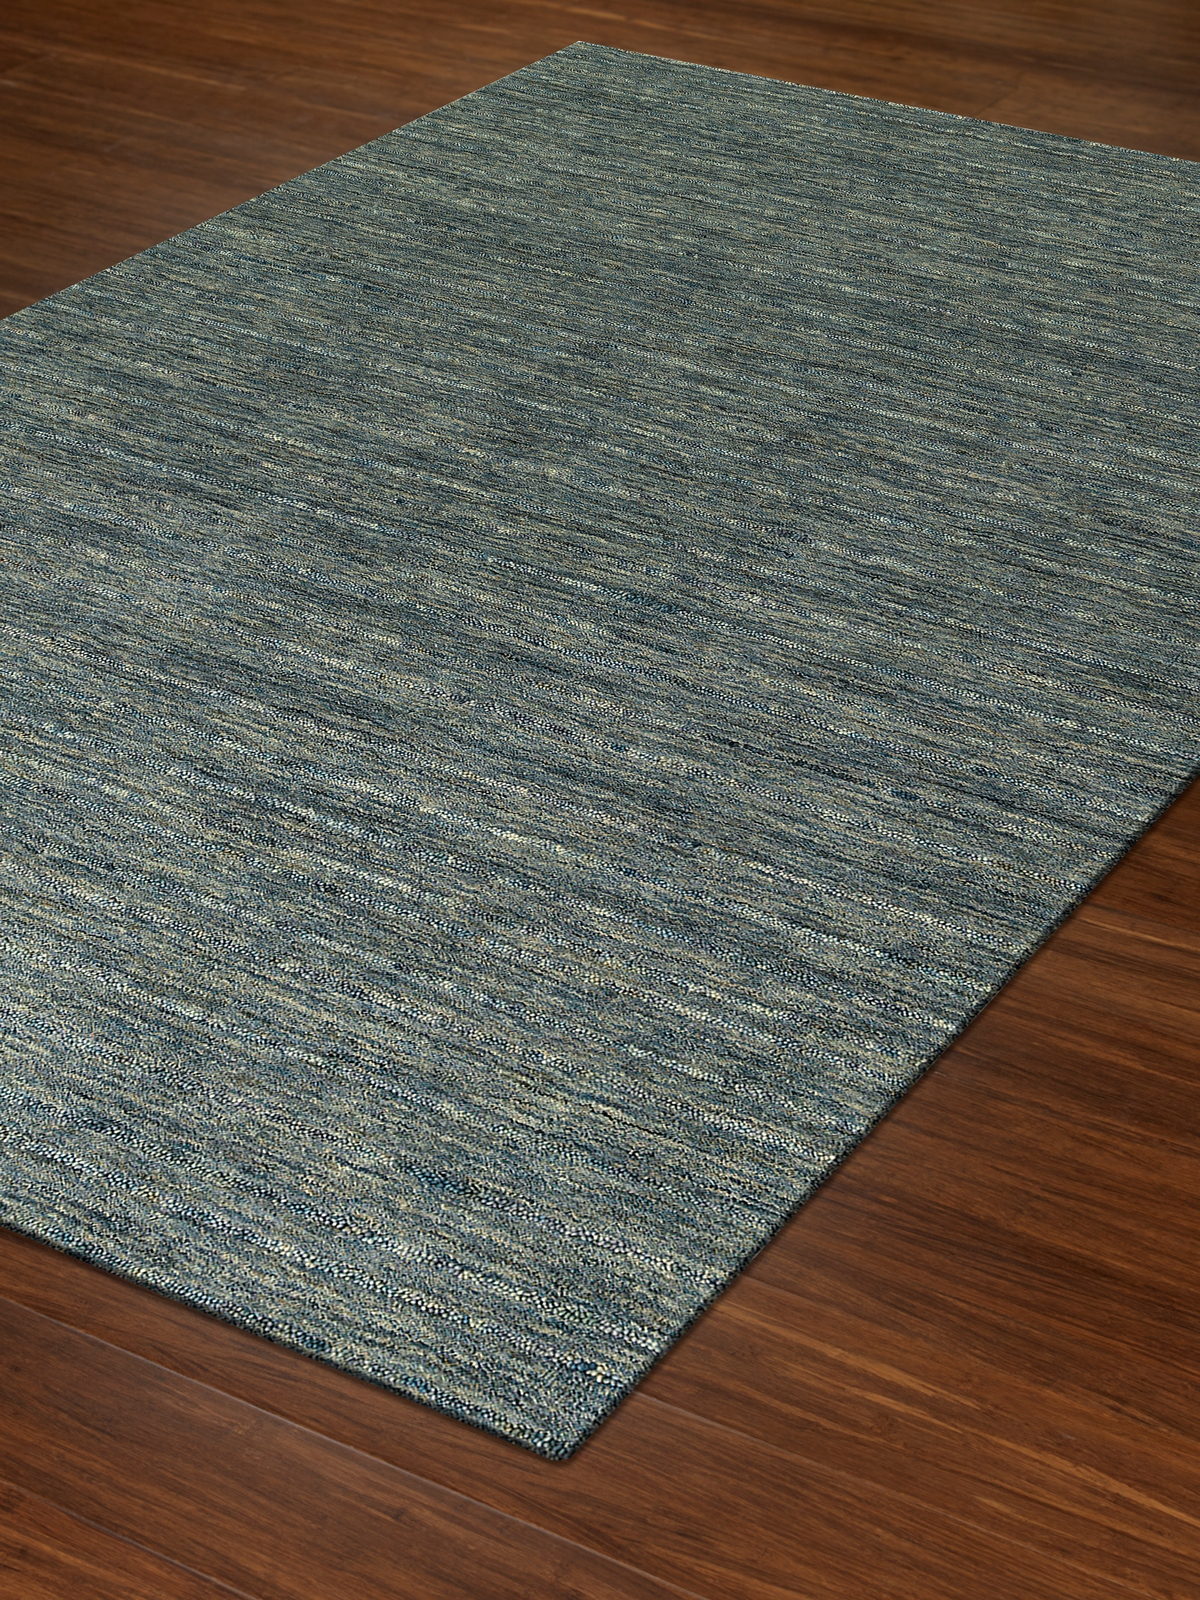 Dalyn Reya Ry7 Lakeview Area Rug Free Shipping